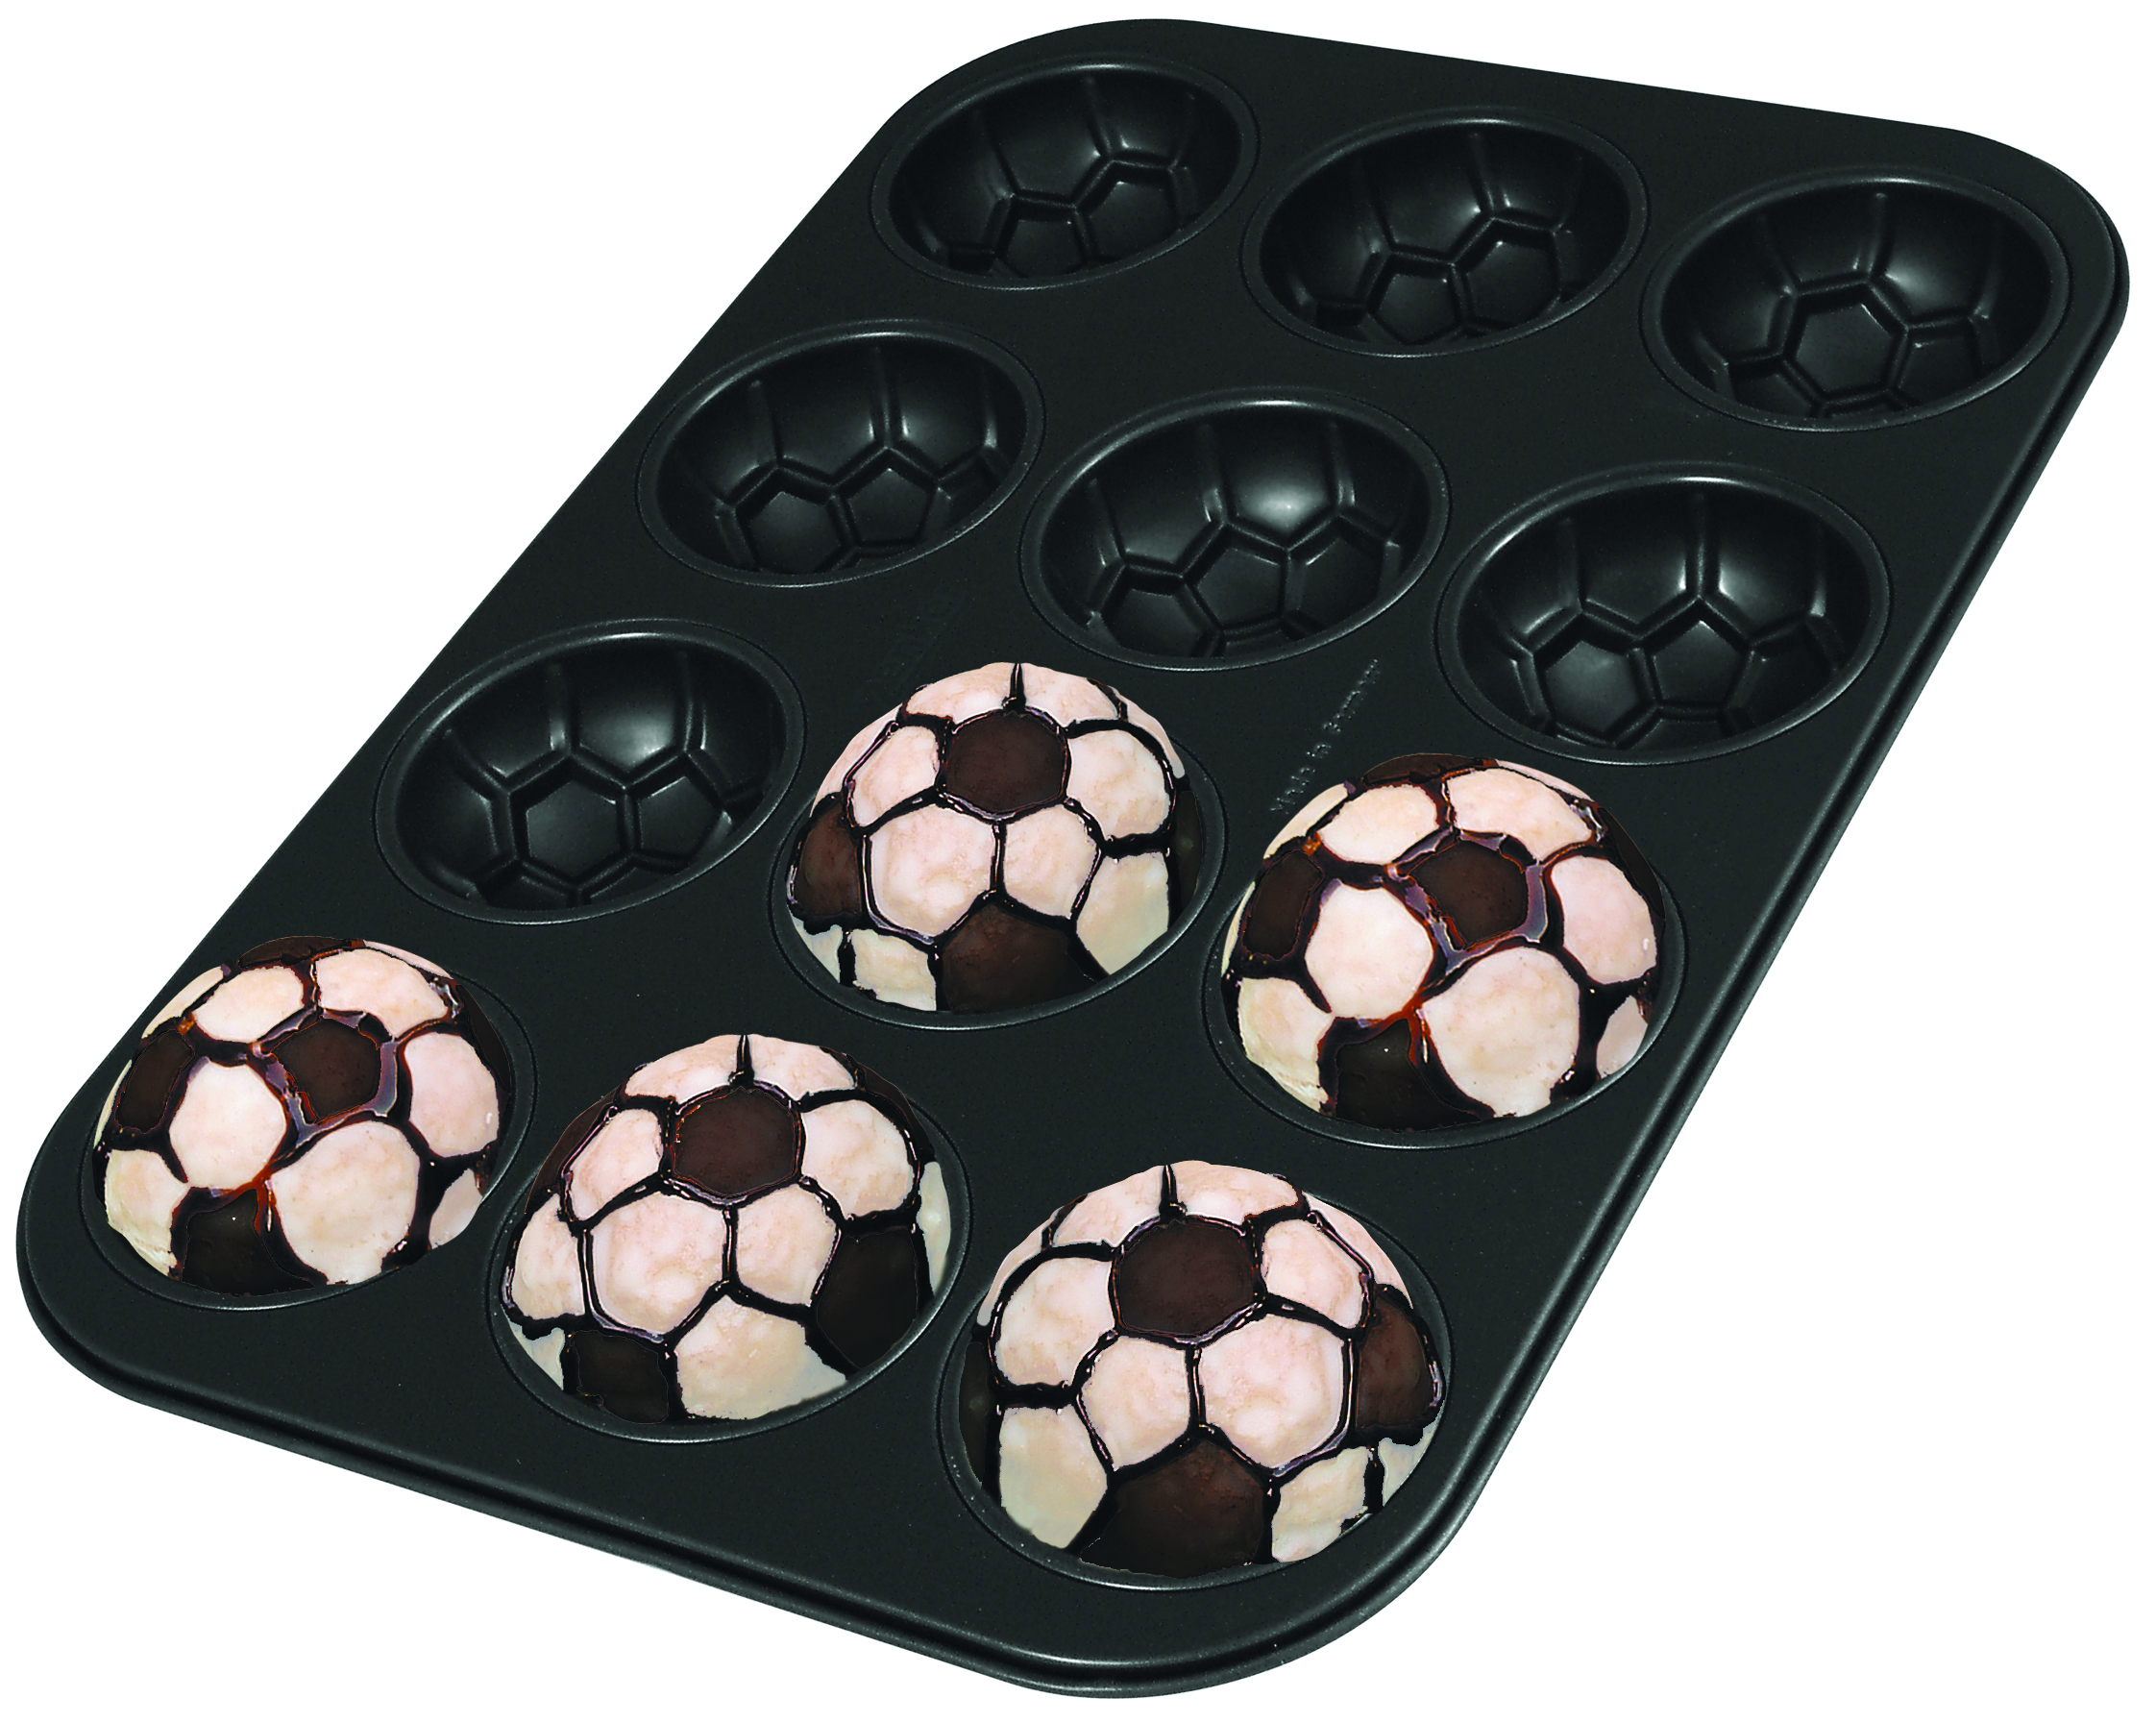 Soccer ball cake pan from Zenker